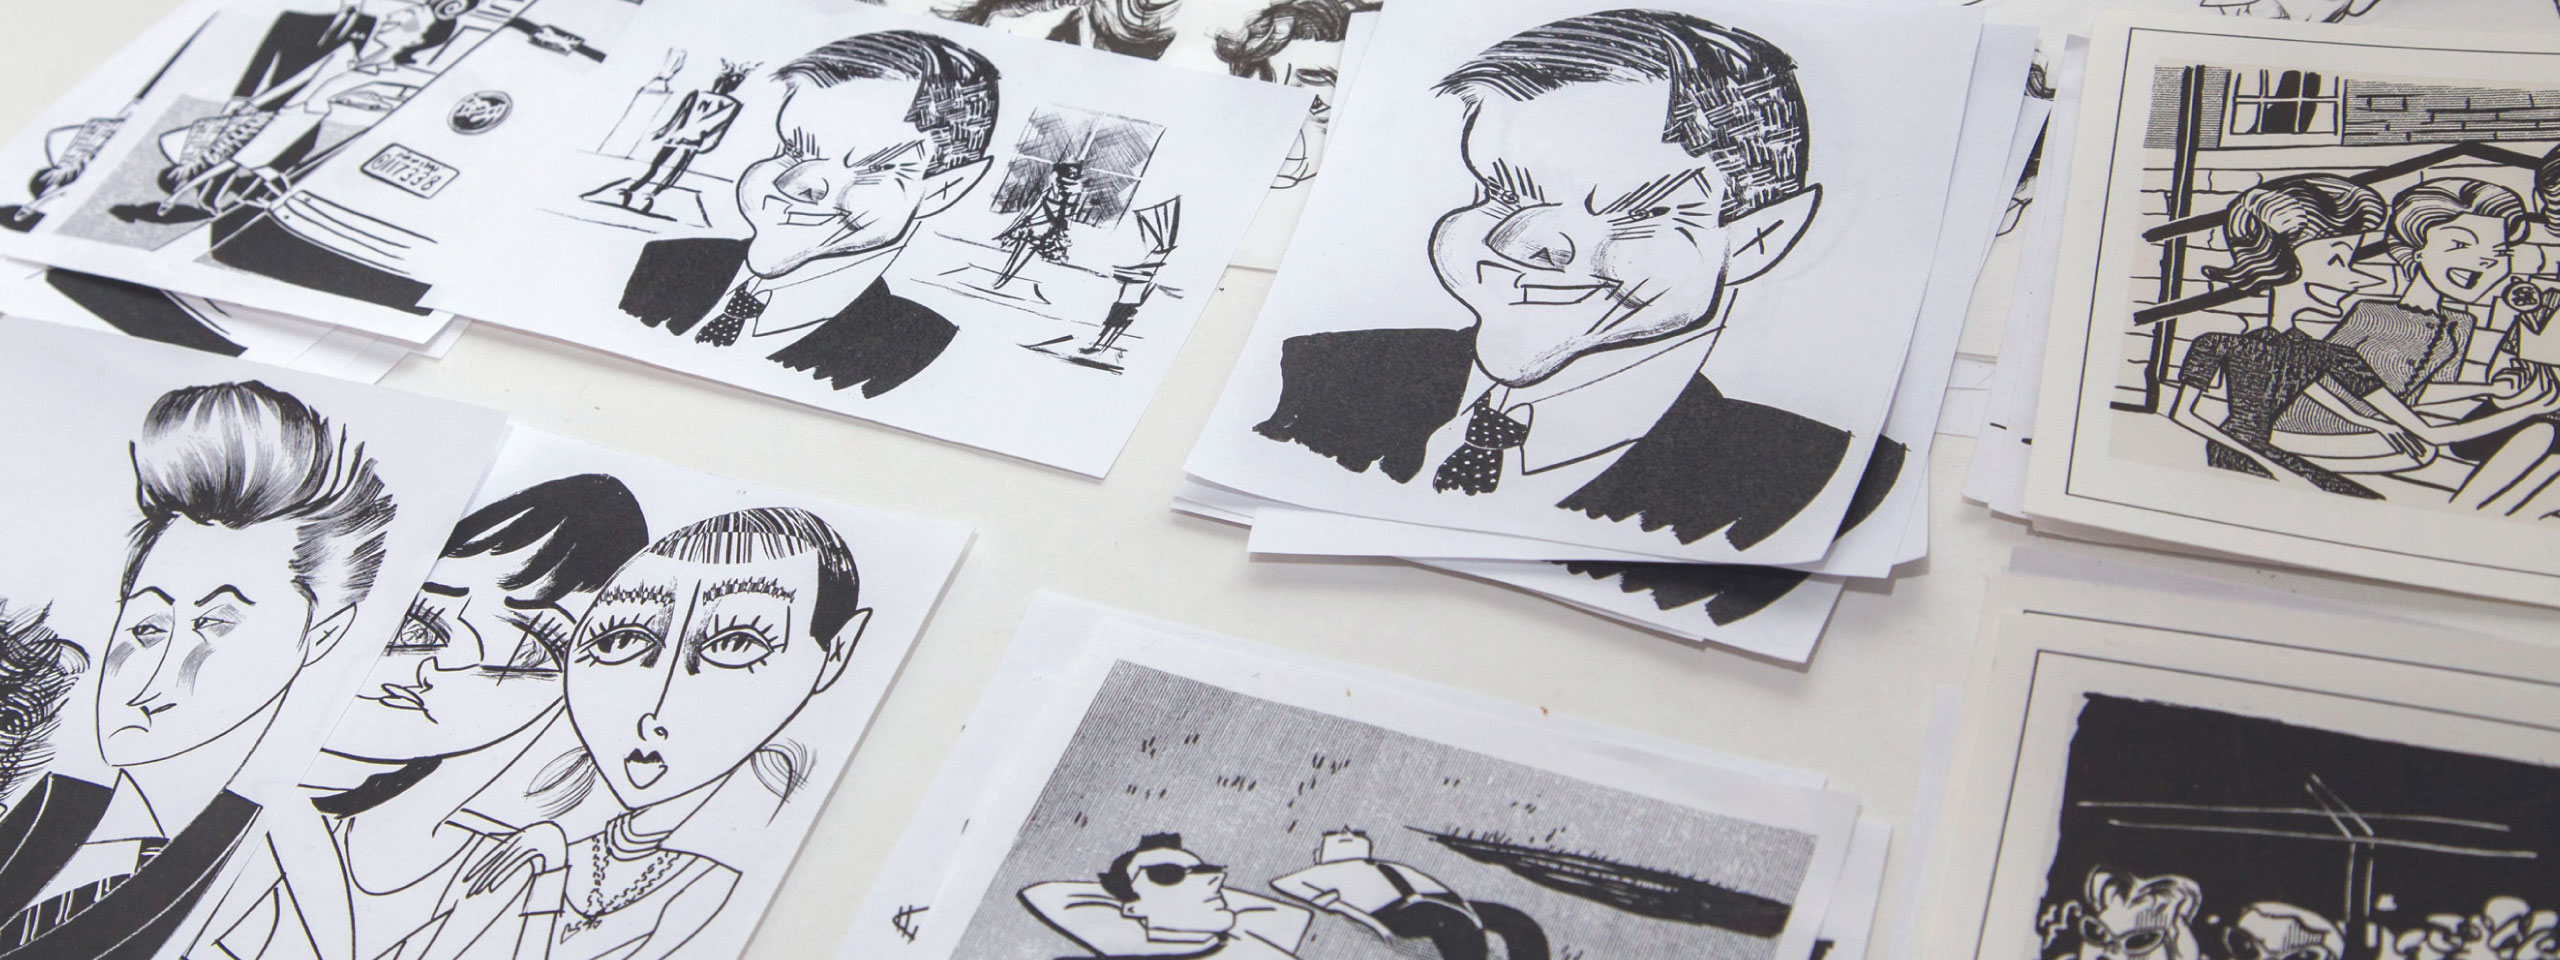 Picture of a few drawings out of Tom Bachtell's body of work